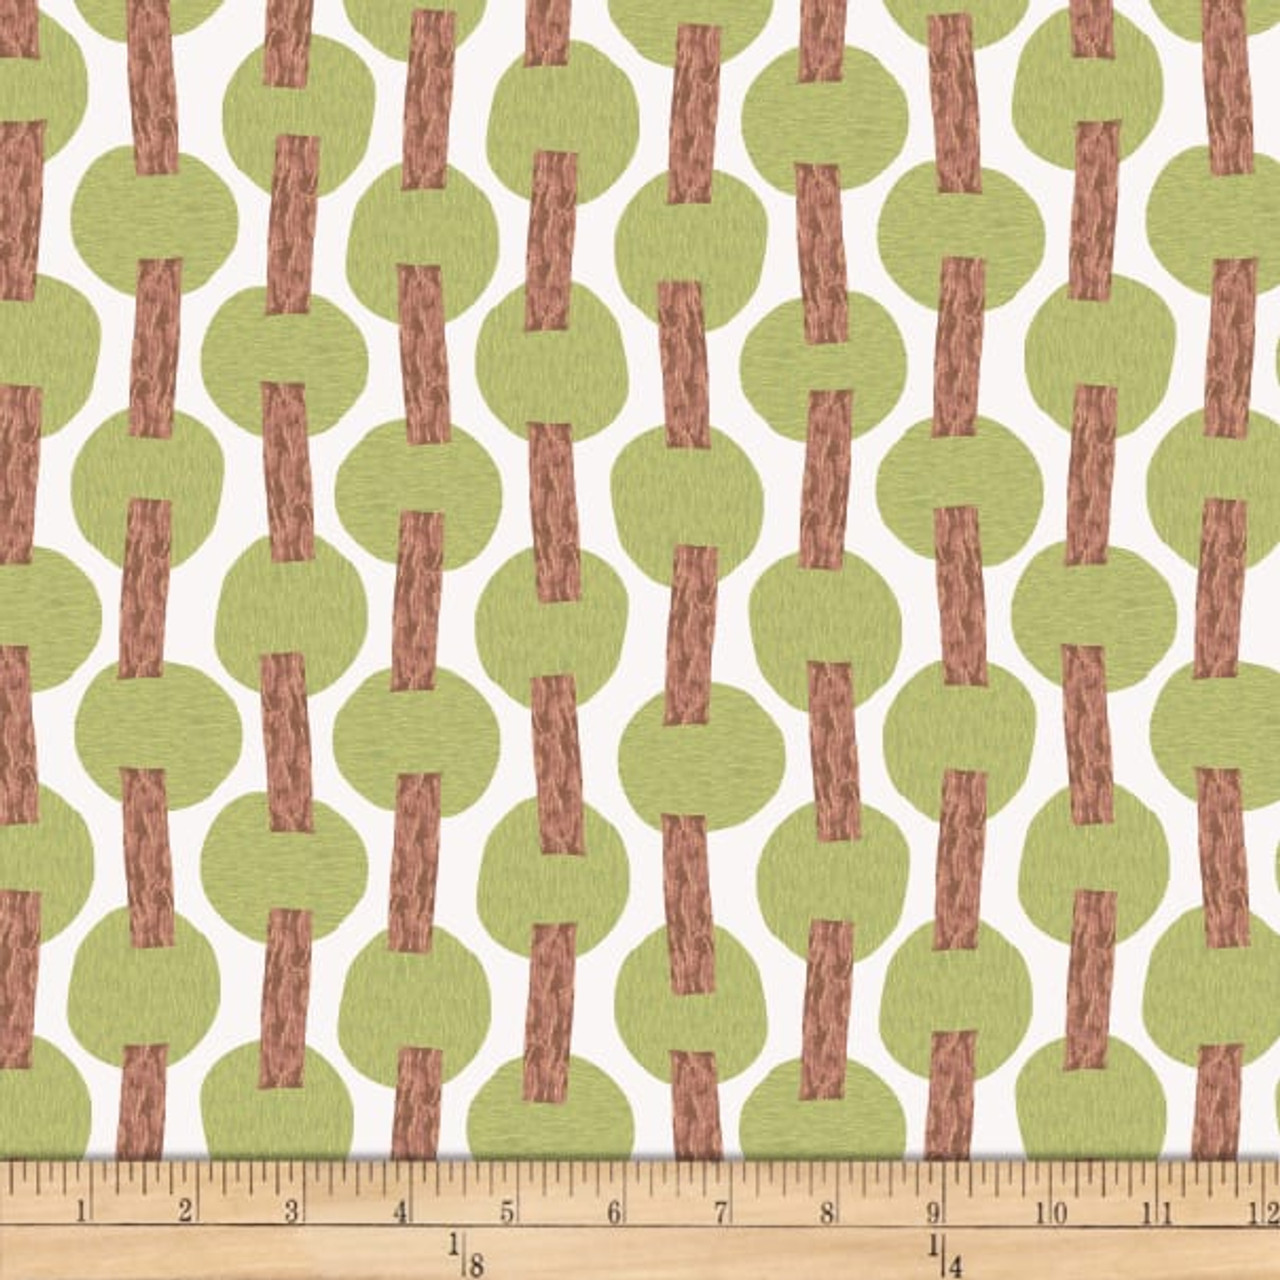 Stof Fabrics Murano Collection Line Dot Purple & Green Cotton Fabric By The Yard